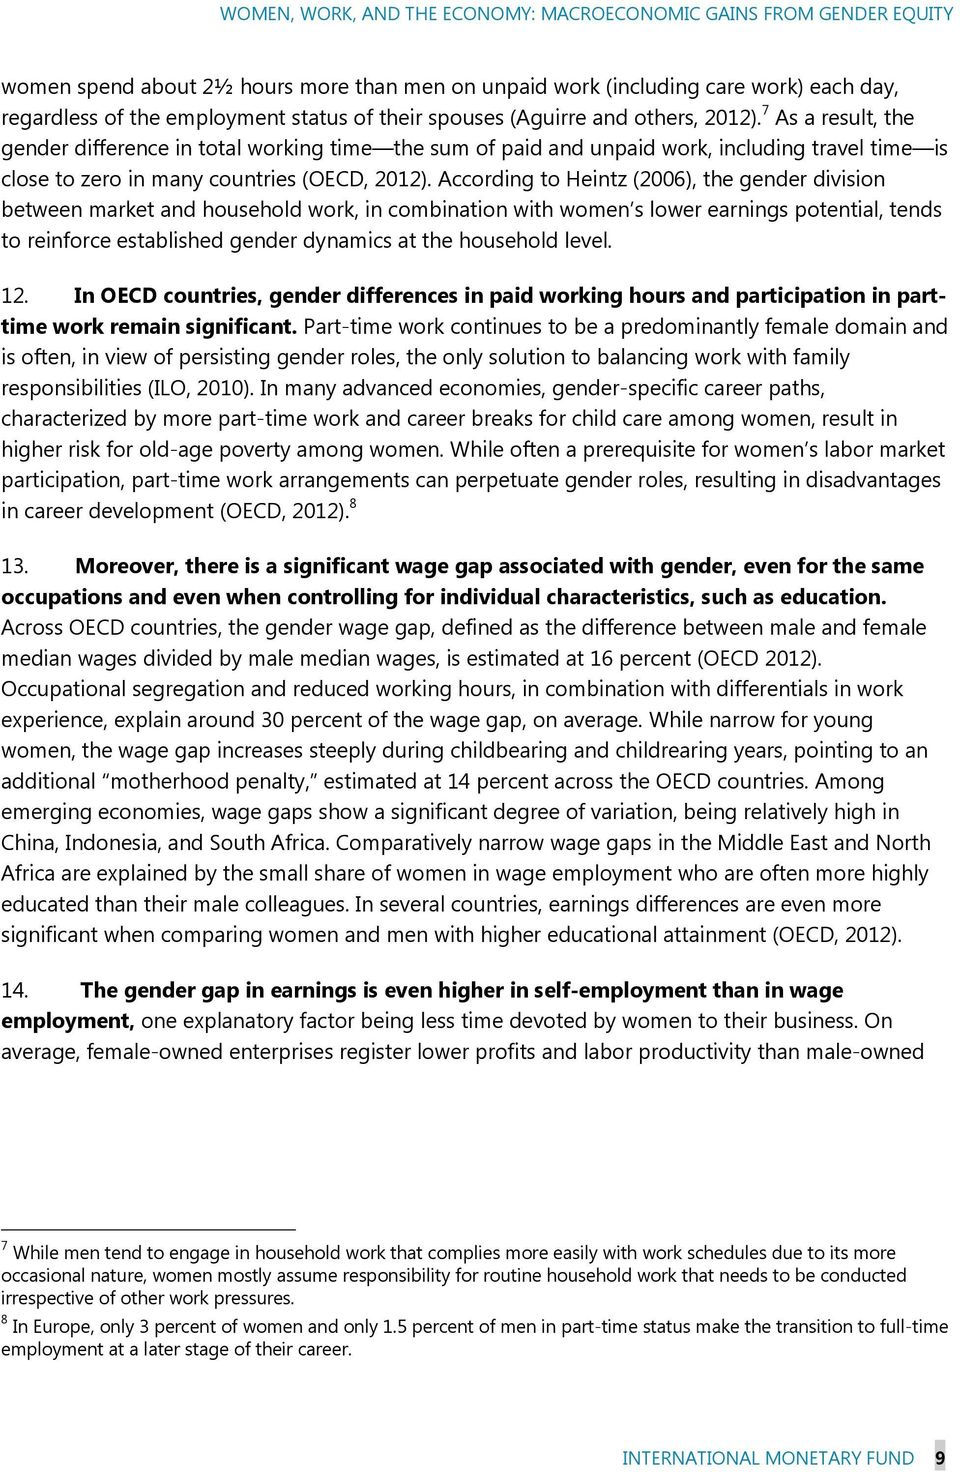 According to Heintz (2006), the gender division between market and household work, in combination with women s lower earnings potential, tends to reinforce established gender dynamics at the